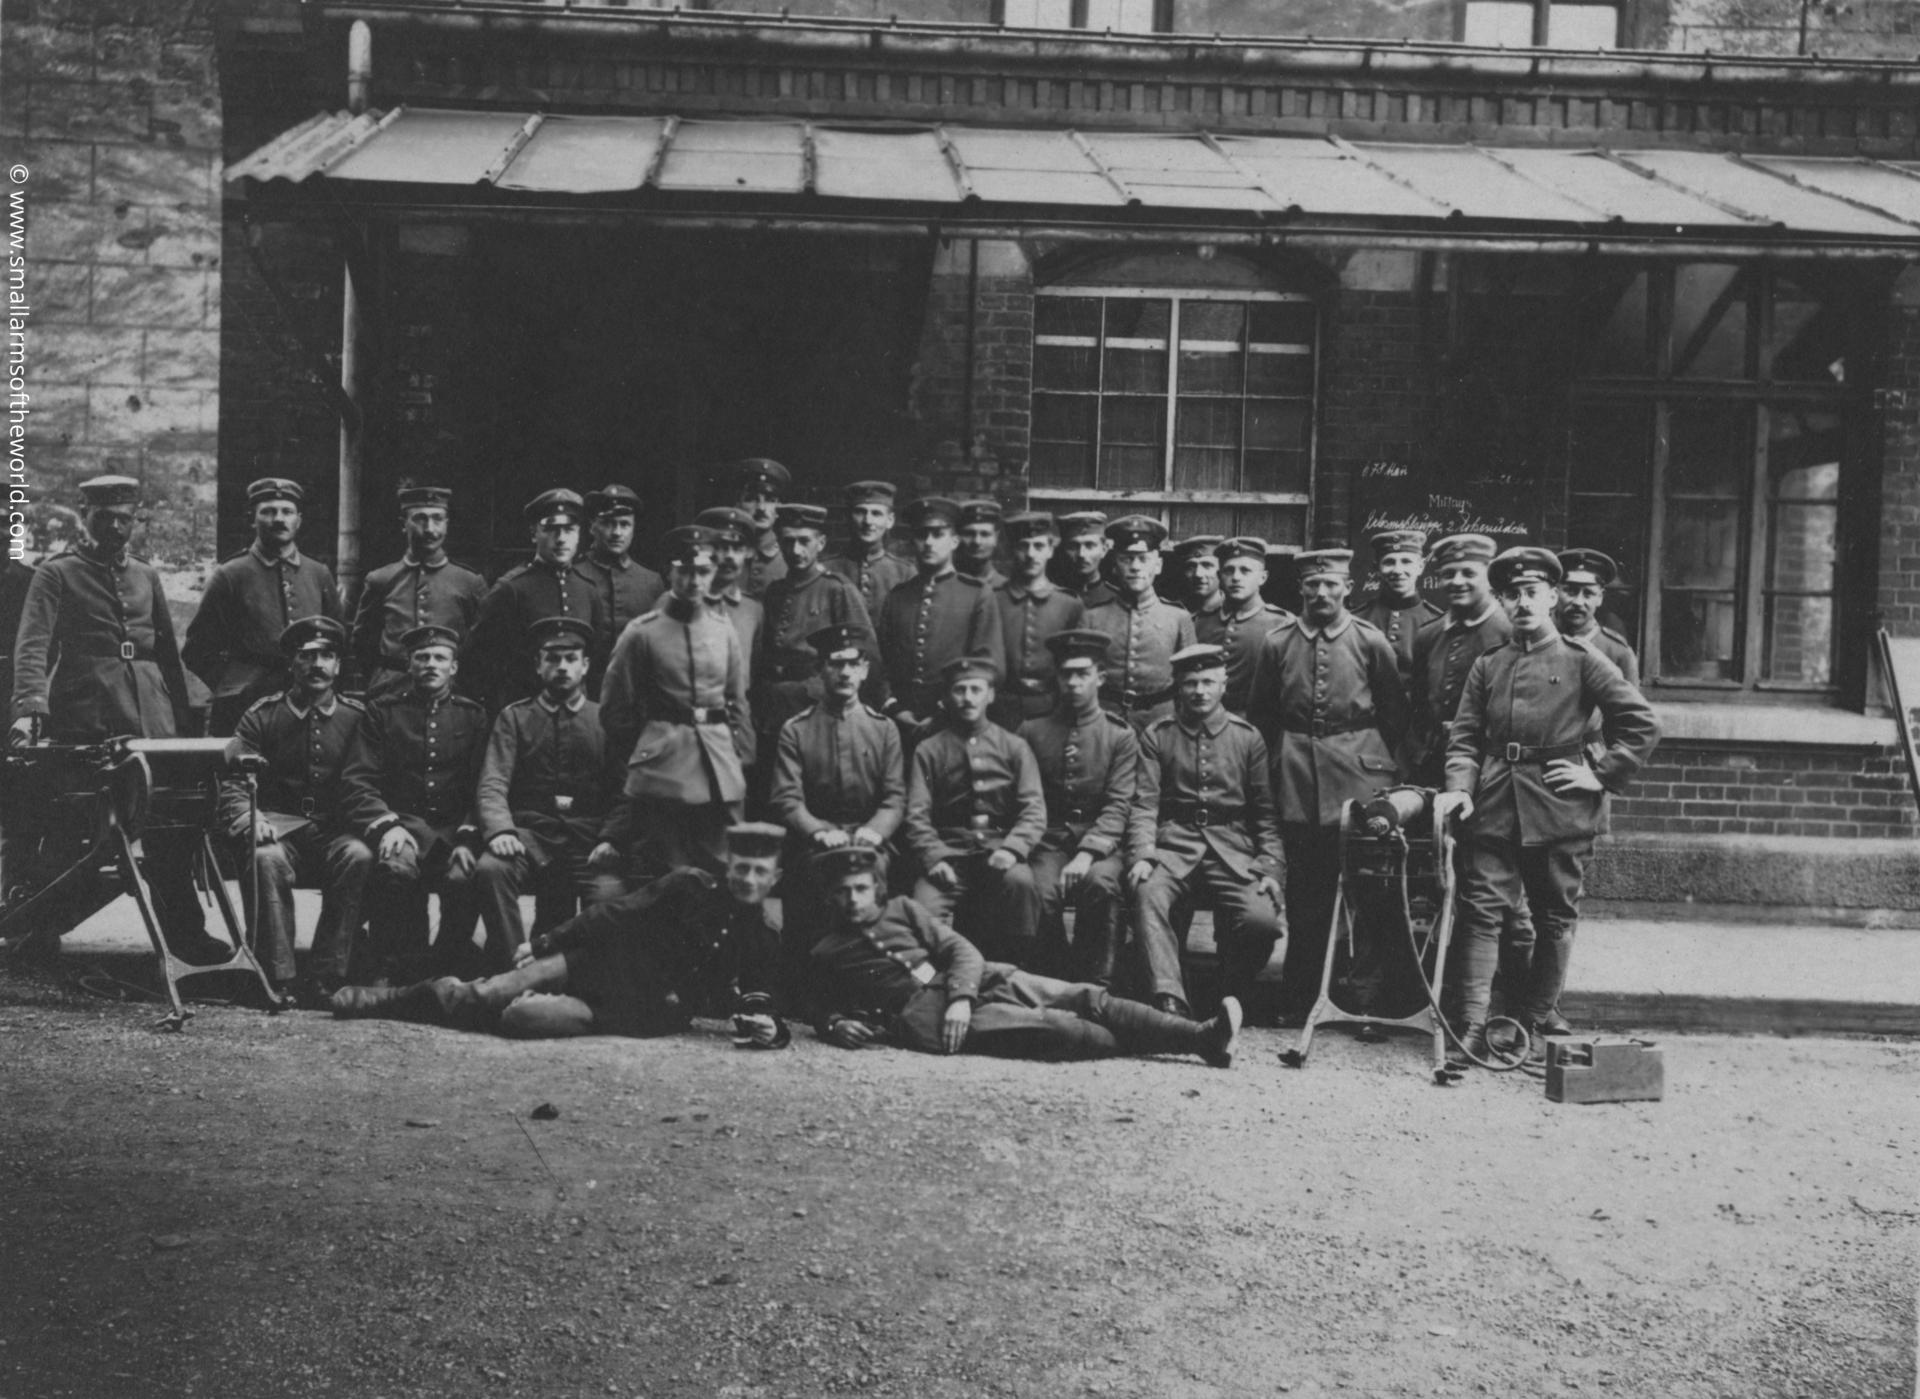 Officers and men in a machine gun company posing with their Maxim MG08 machine guns